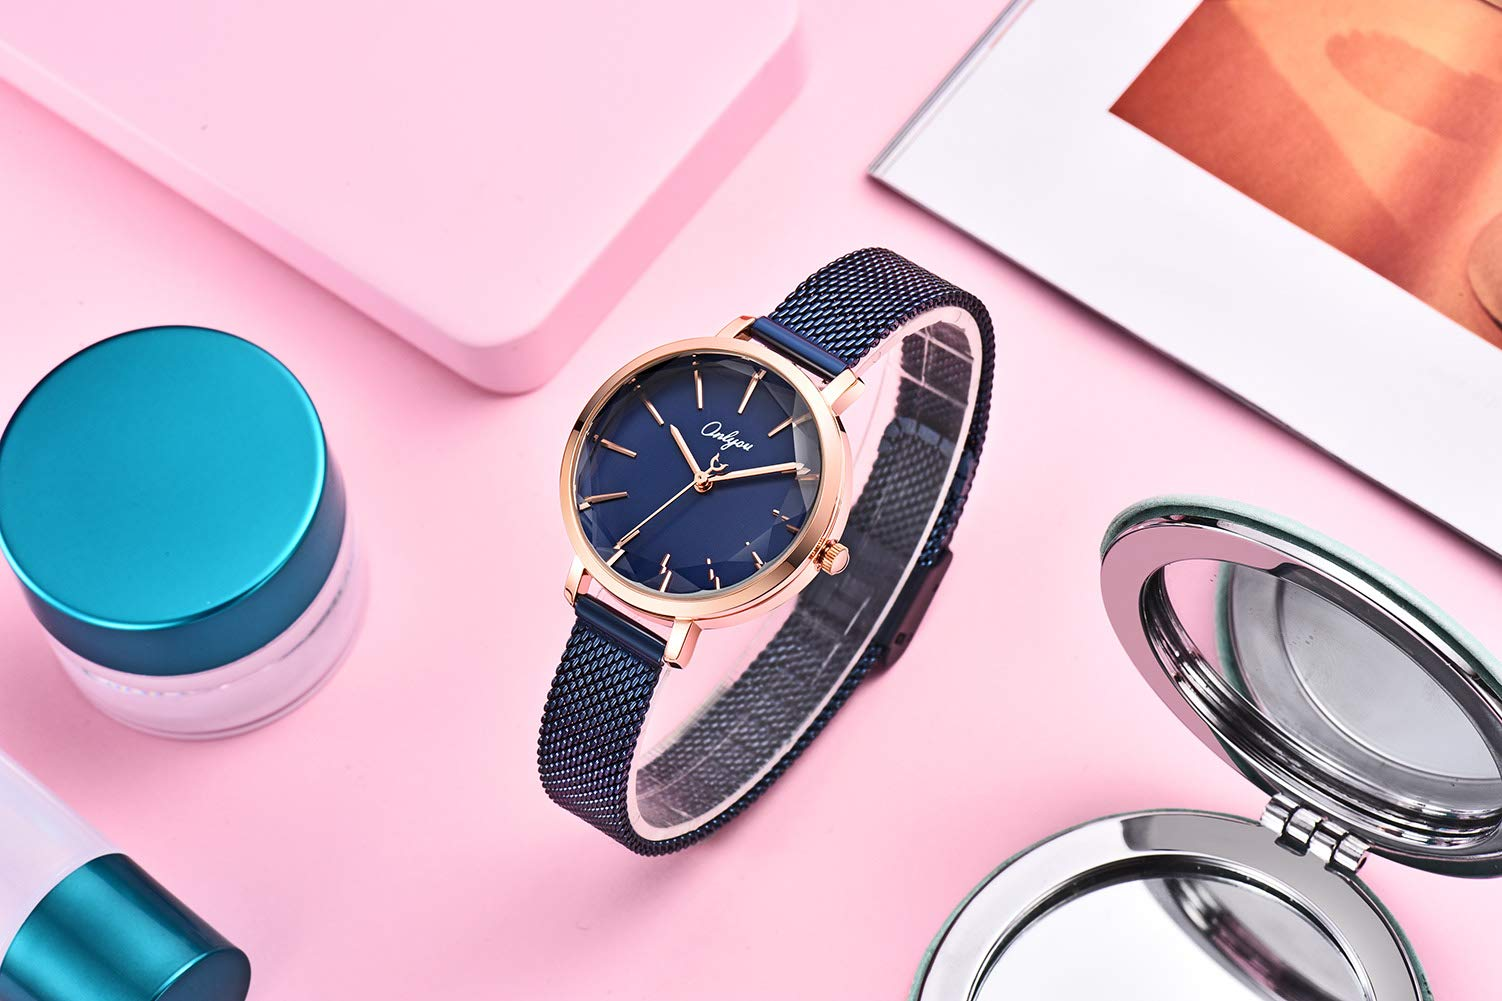 ONLYOU Women's Fashion Watches,Unique Face Design and 30M Waterproof,Analog Quartz Wristwatches with Stainless Steel Mesh Band (Blue) by onlyou (Image #3)